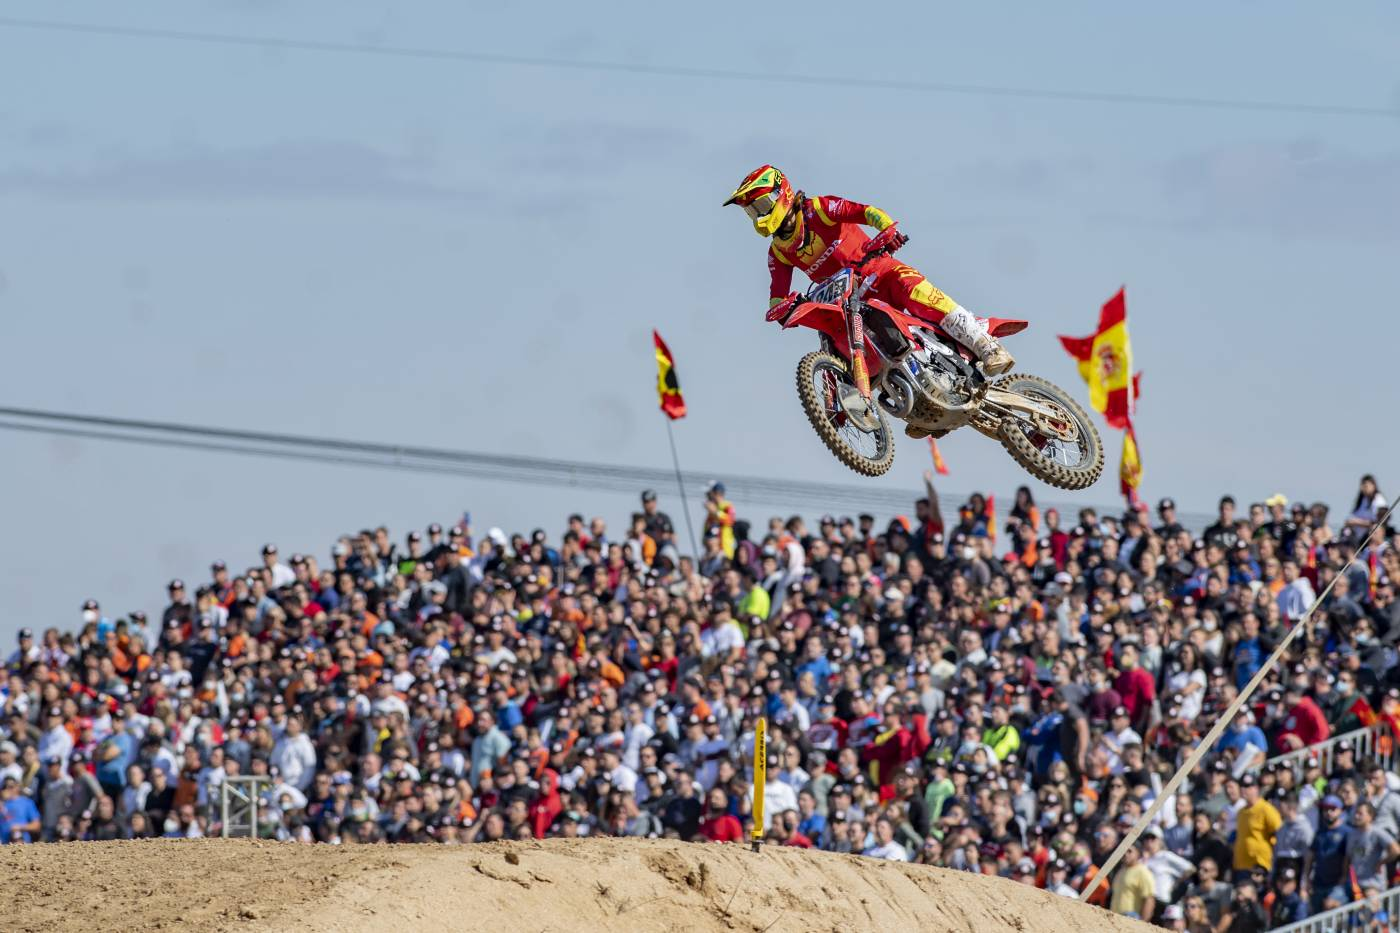 Another podium for Team HRC's Tim Gajser in Spain